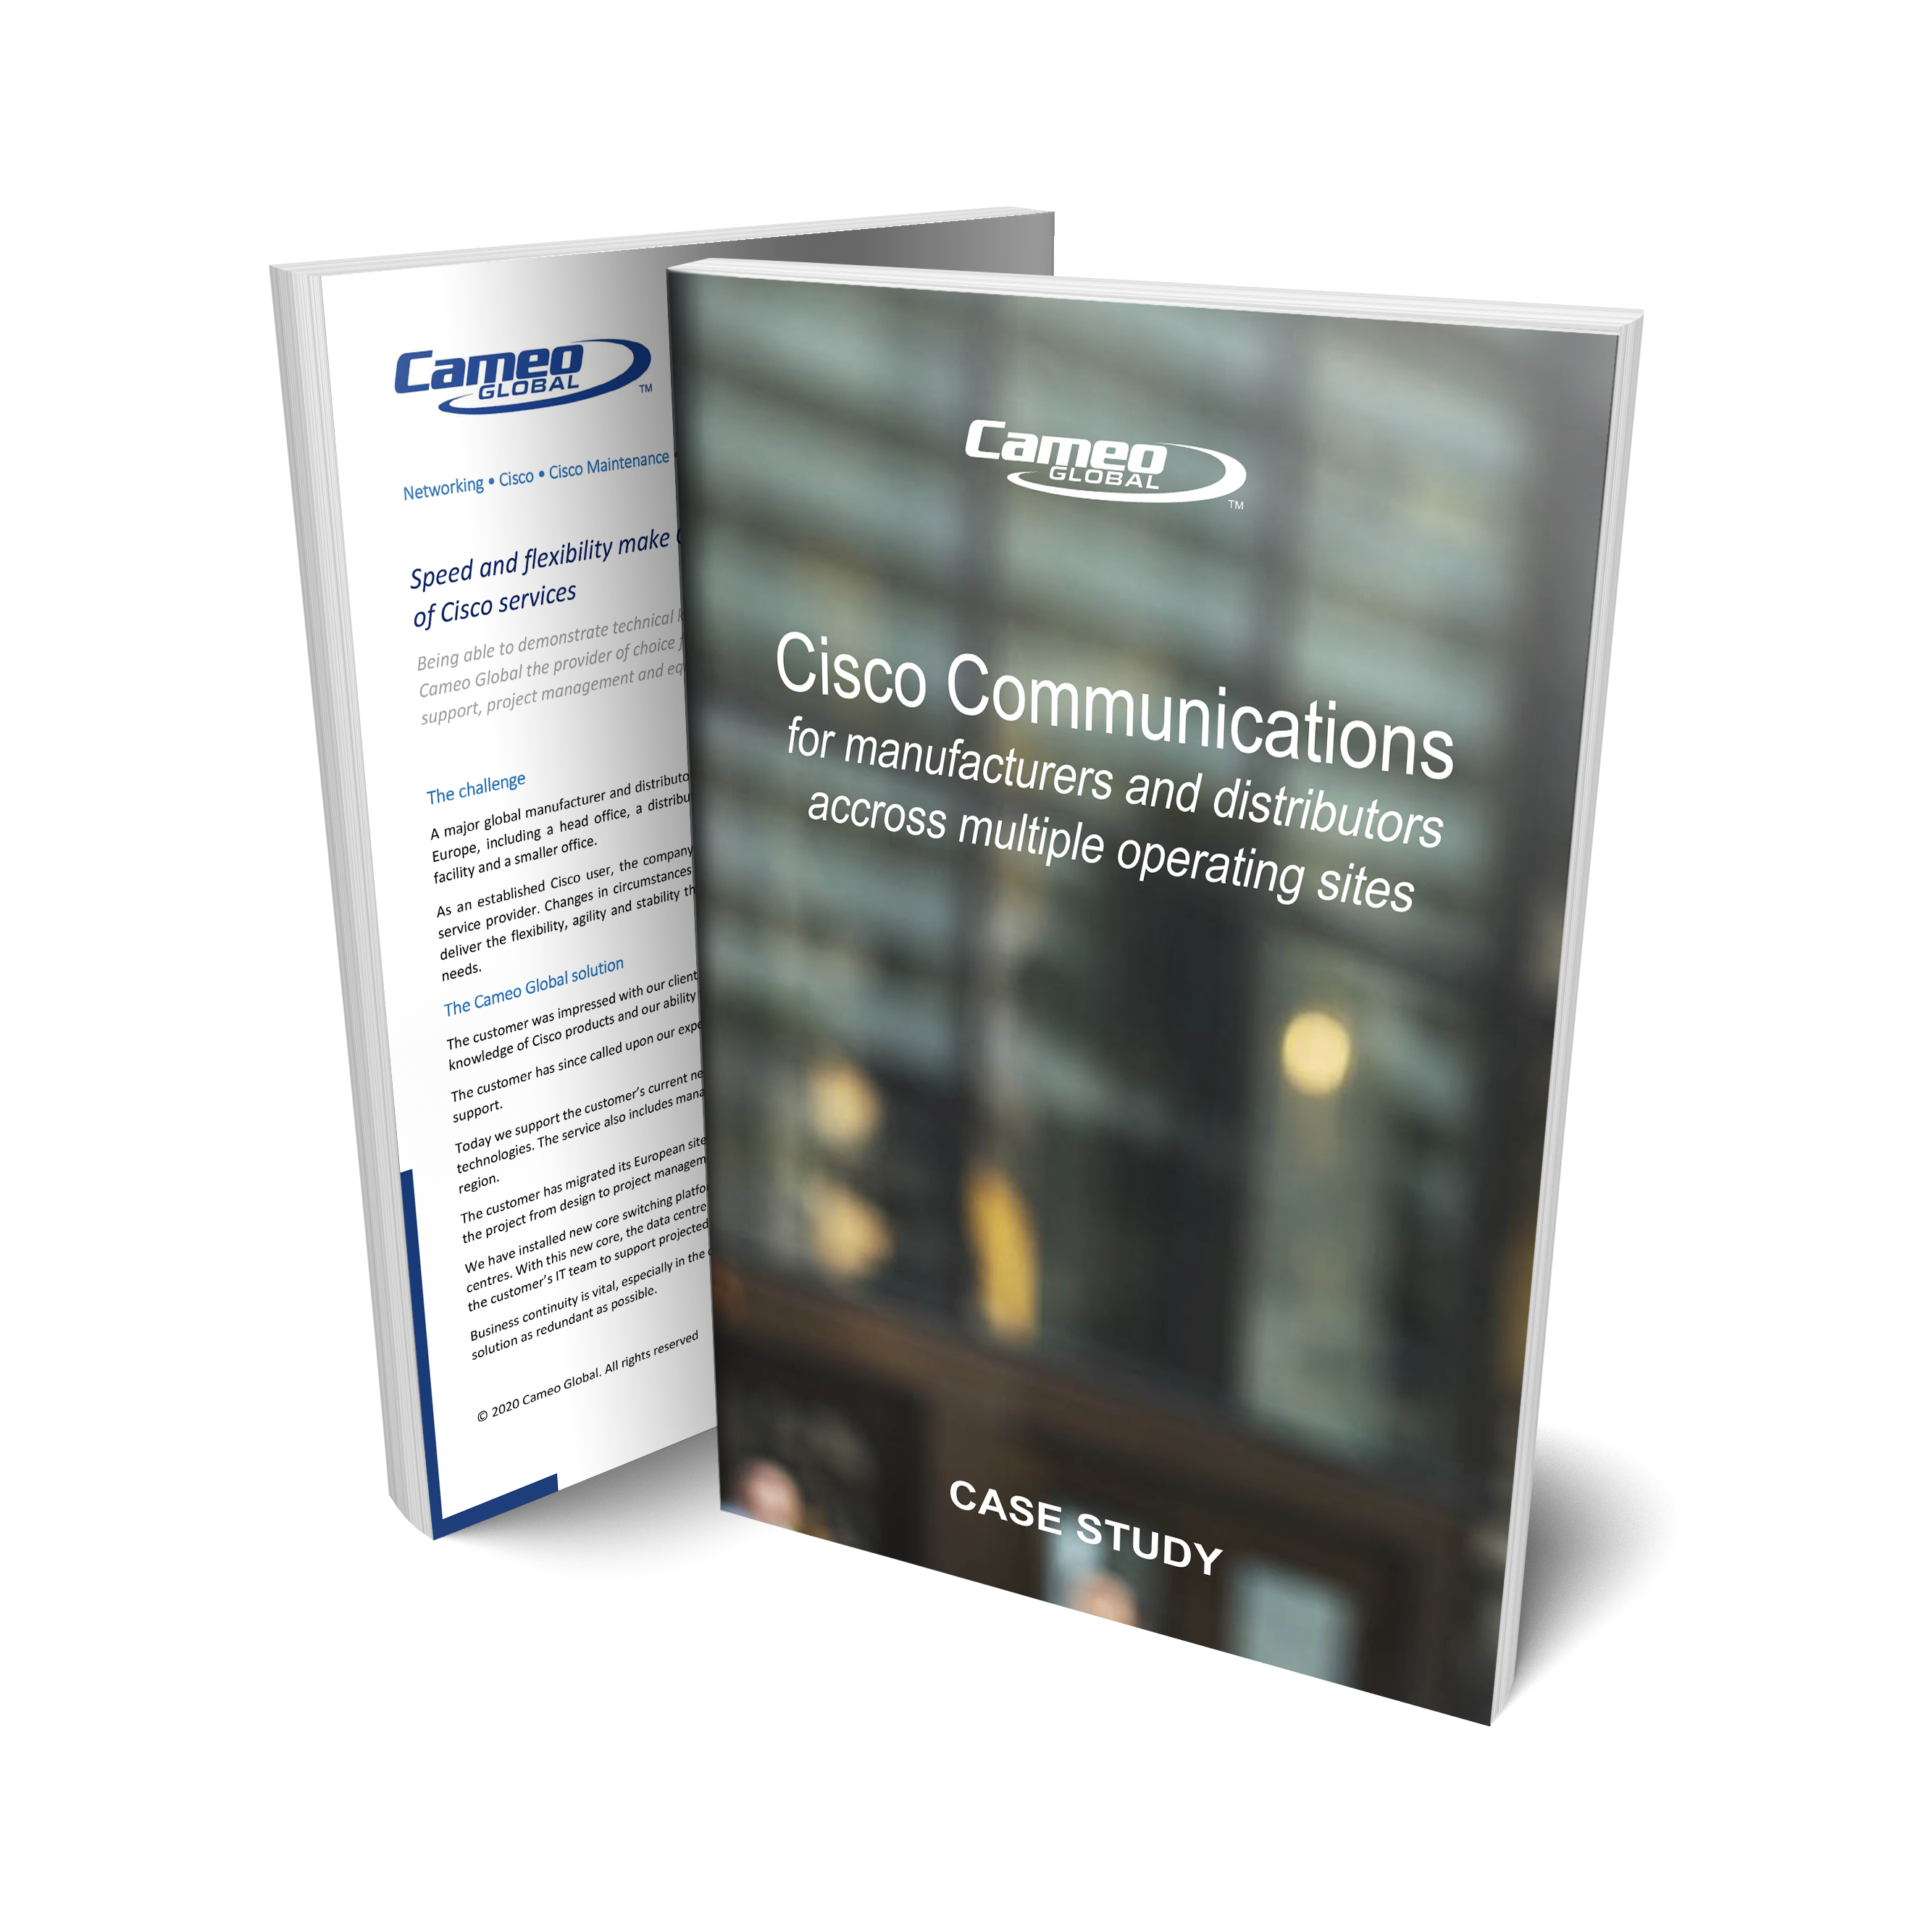 Read our case study: Cisco Communications for Major Manufacturers